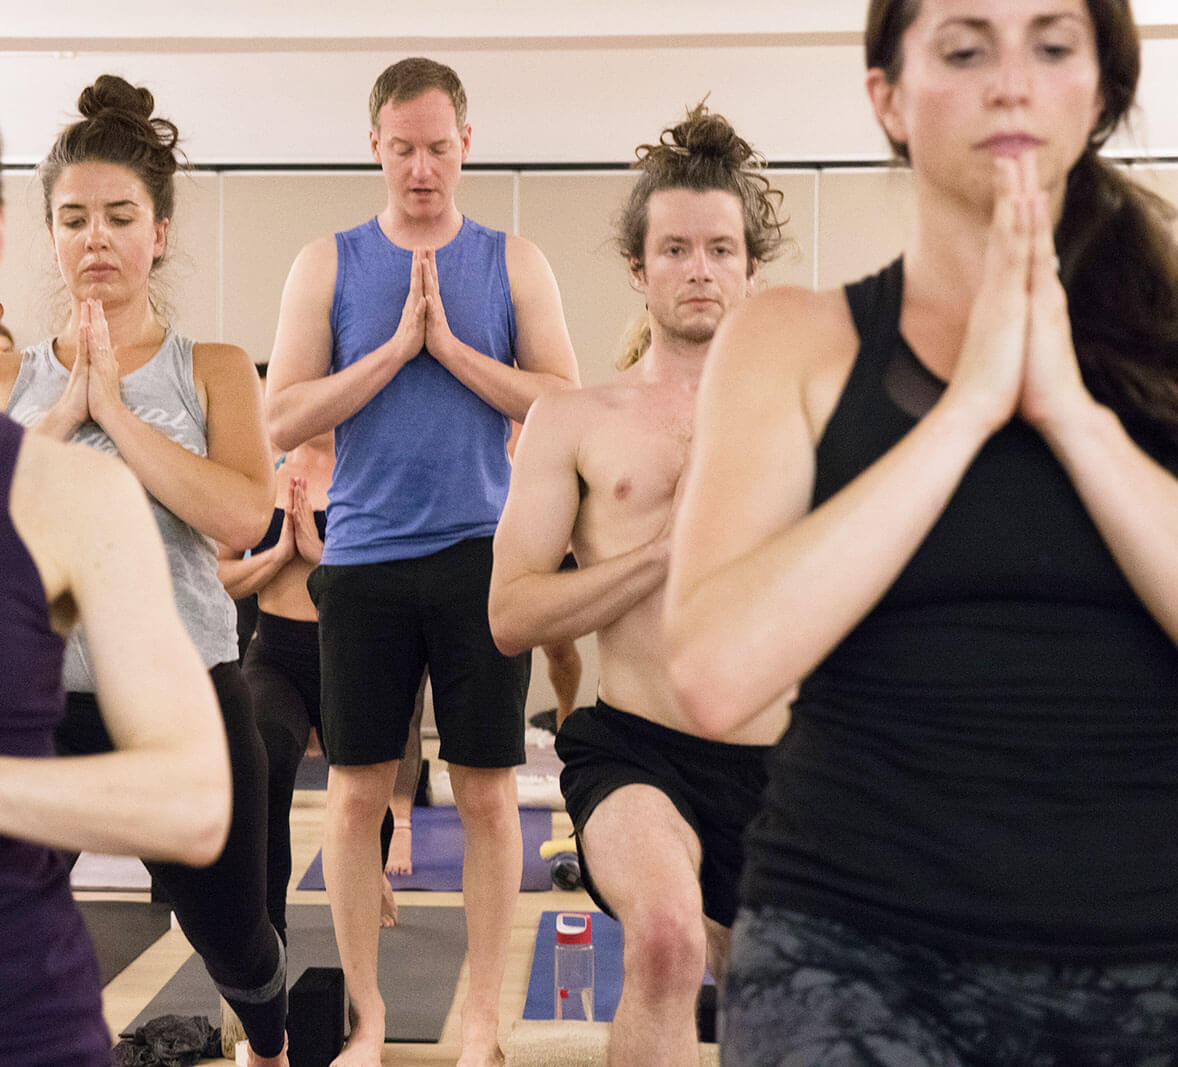 Yoga Teaching Tips for When Life Throws You a Curveball